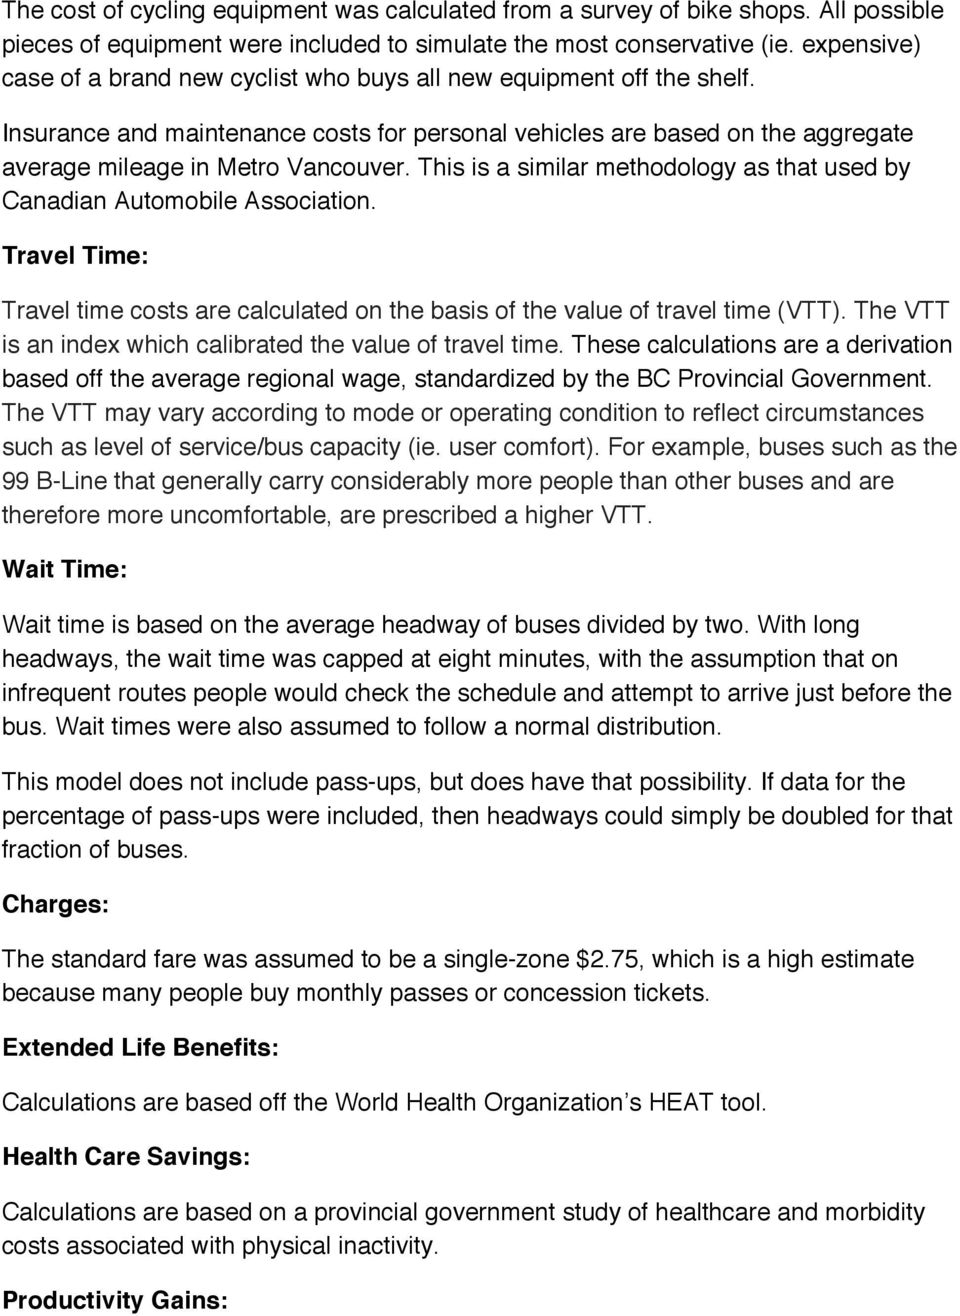 This is a similar methodology as that used by Canadian Automobile Association. Travel Time: Travel time costs are calculated on the basis of the value of travel time (VTT).